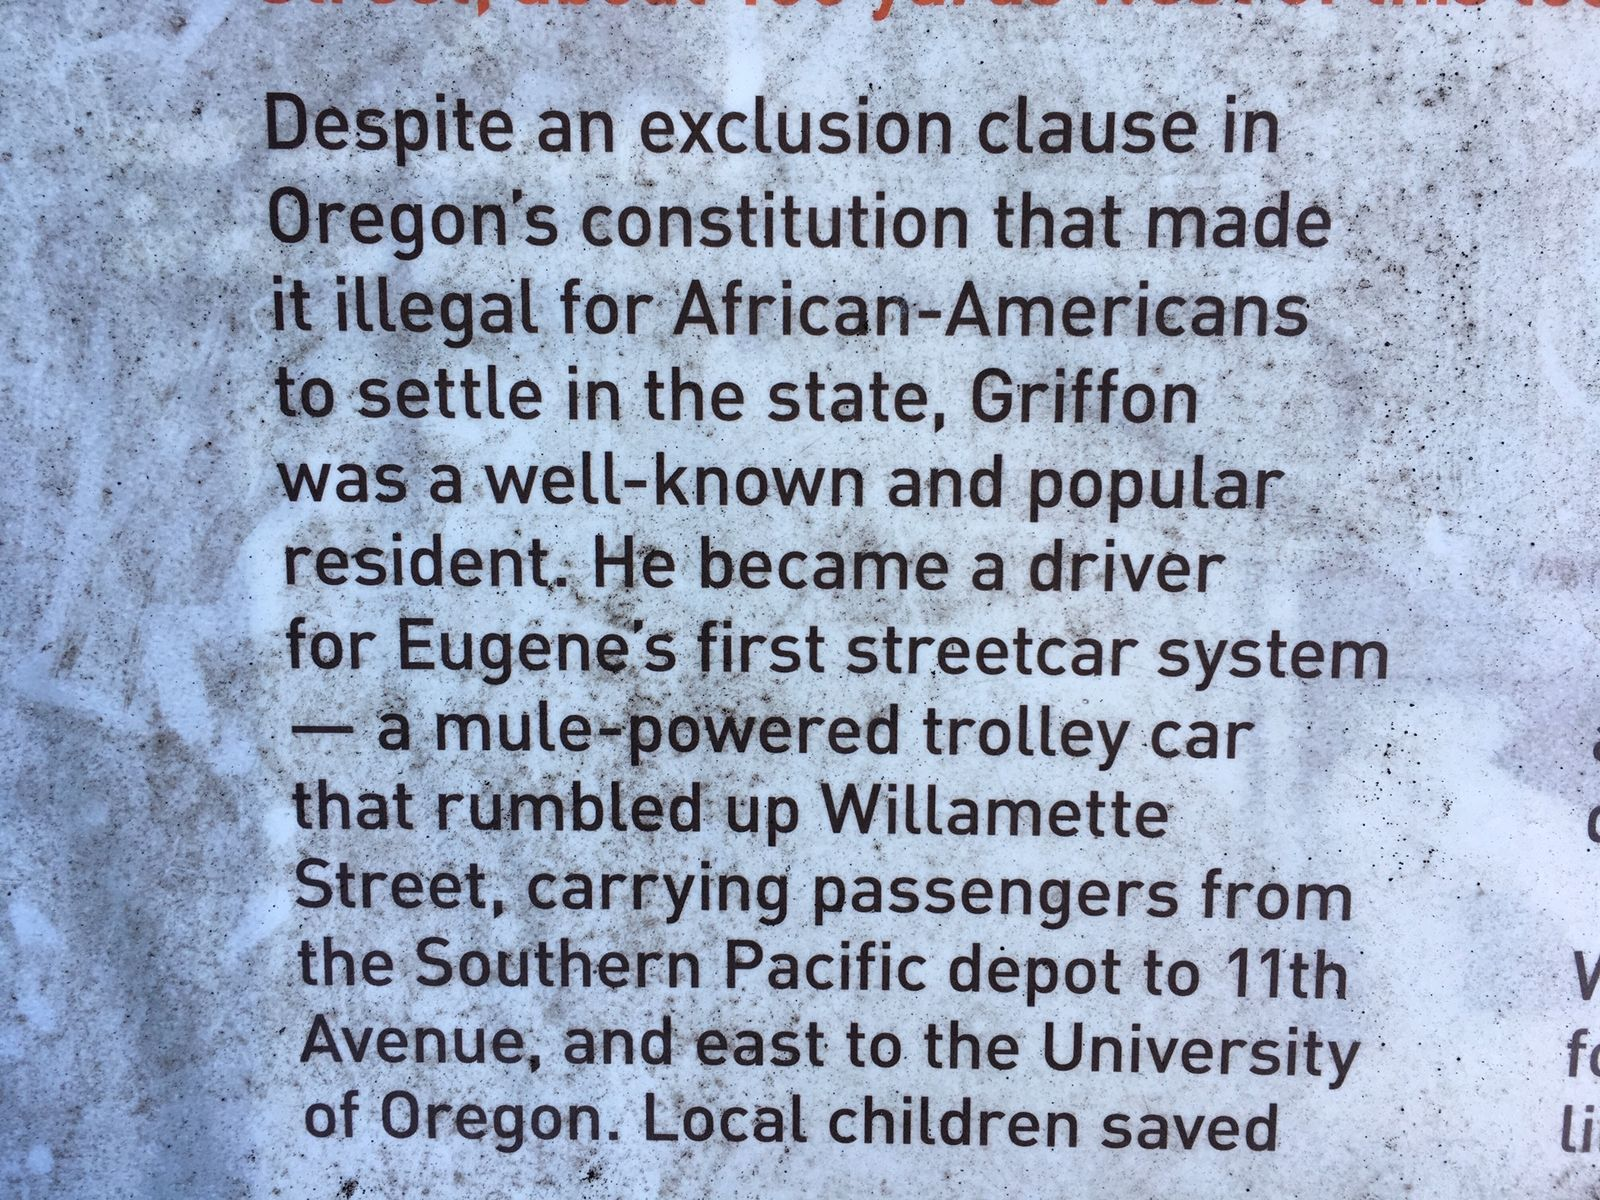 Griffon was among Eugene's earliest African-American residents. In 1909, he purchased a small home at 4th Avenue and Mill Street. (SBG)